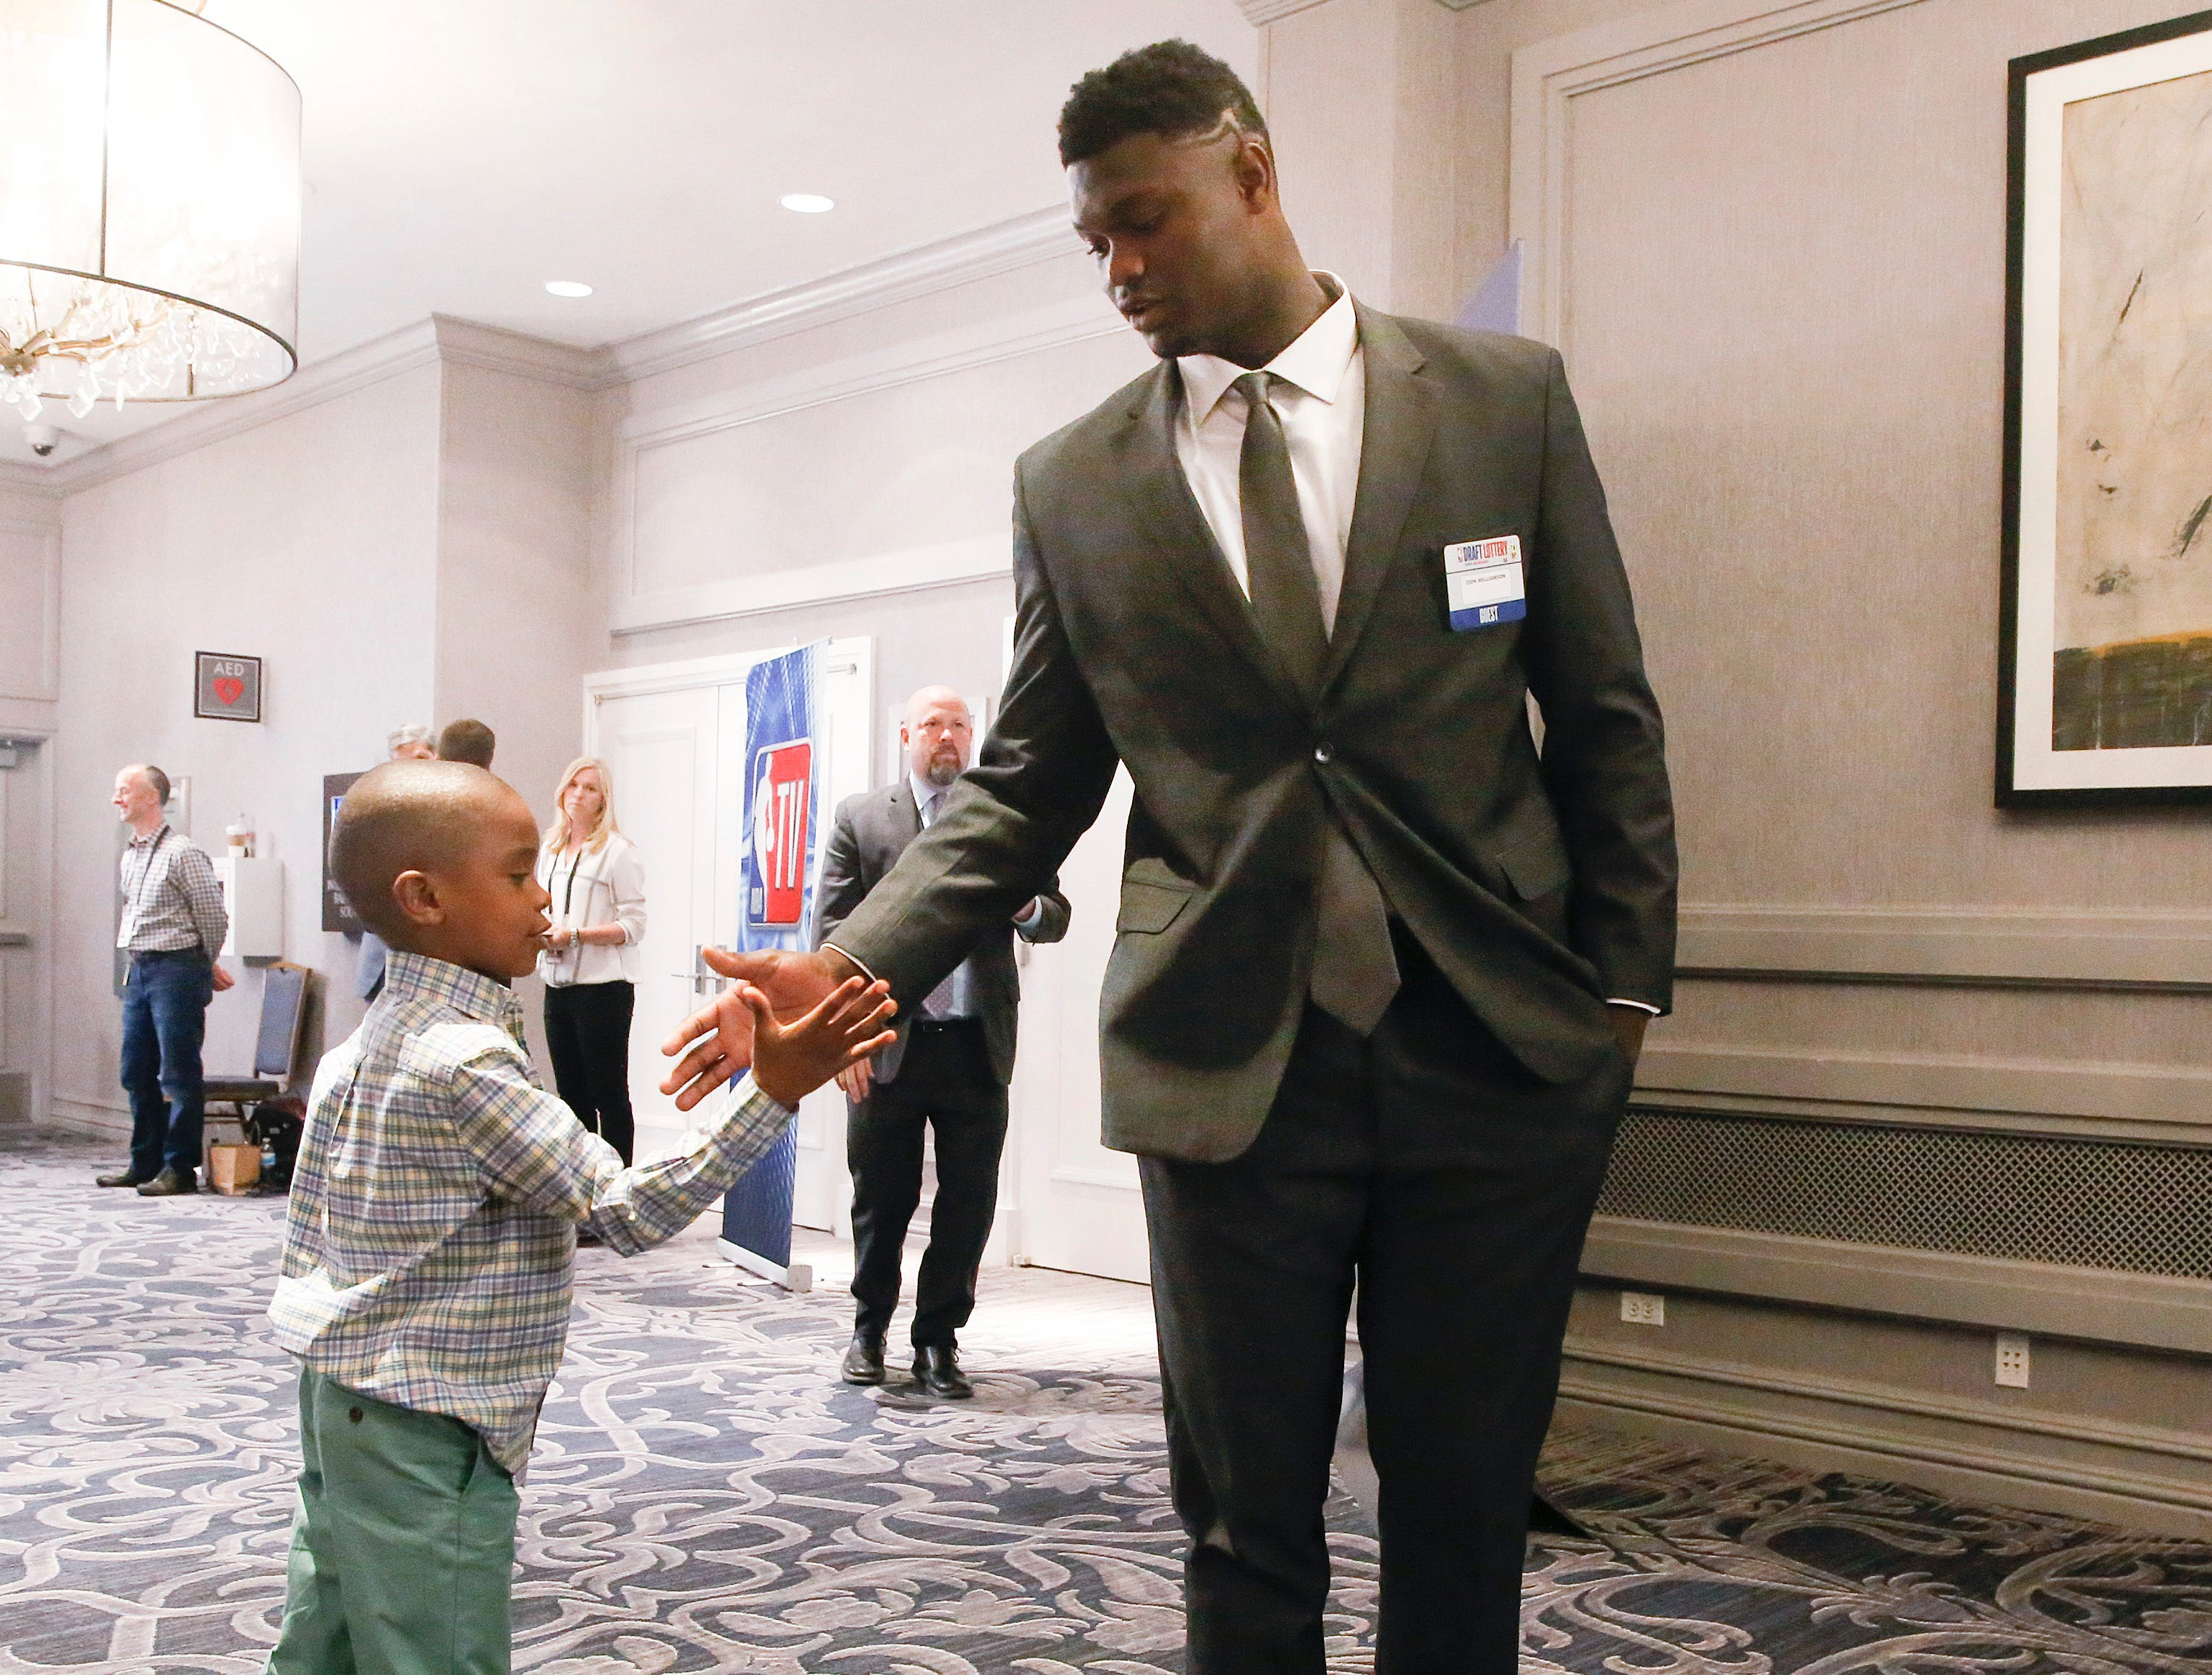 Duke's Zion Williamson, right, stands with his brother Noah Anderson before the NBA basketball draft lottery Tuesday, May 14, 2019, in Chicago. (AP Photo/Nuccio DiNuzzo)